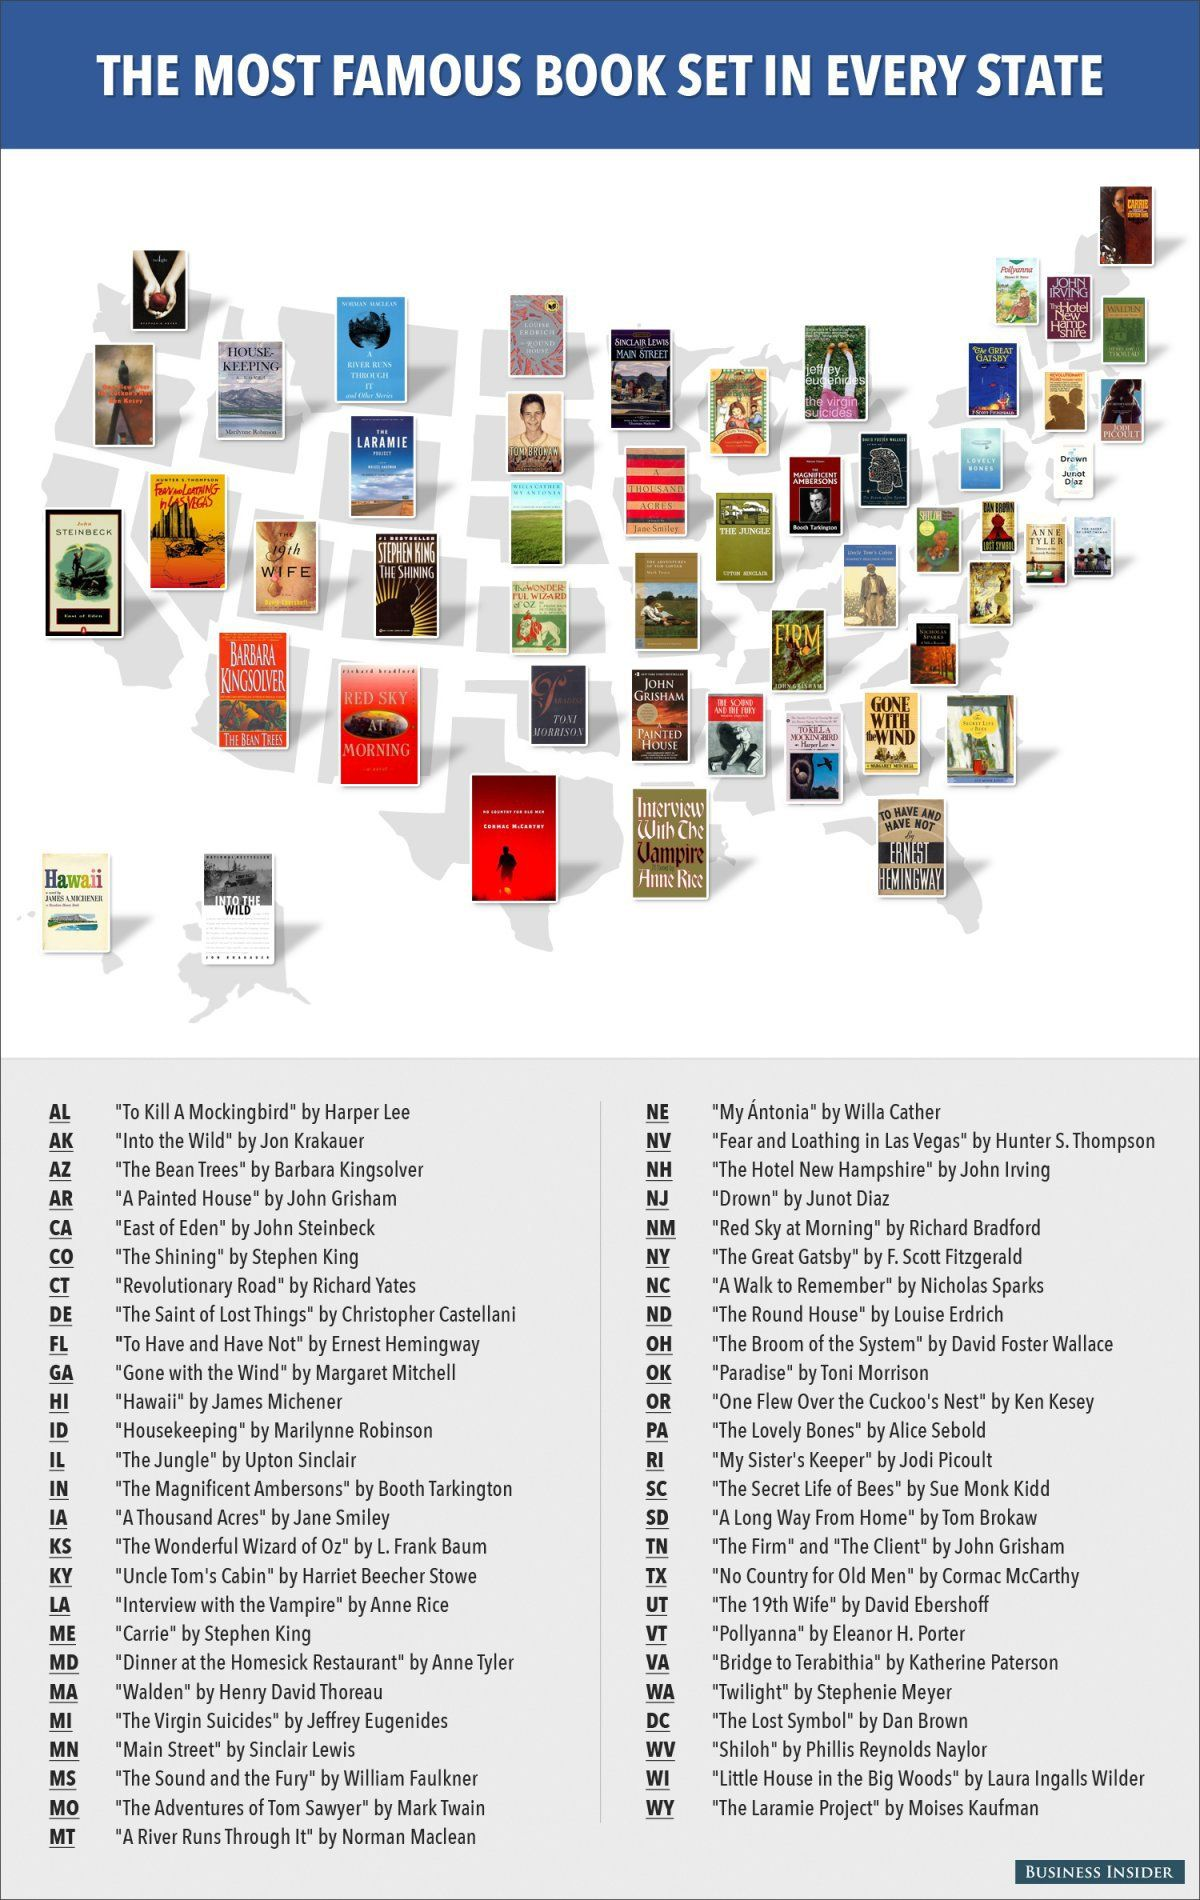 What are the most famous books in each US state?